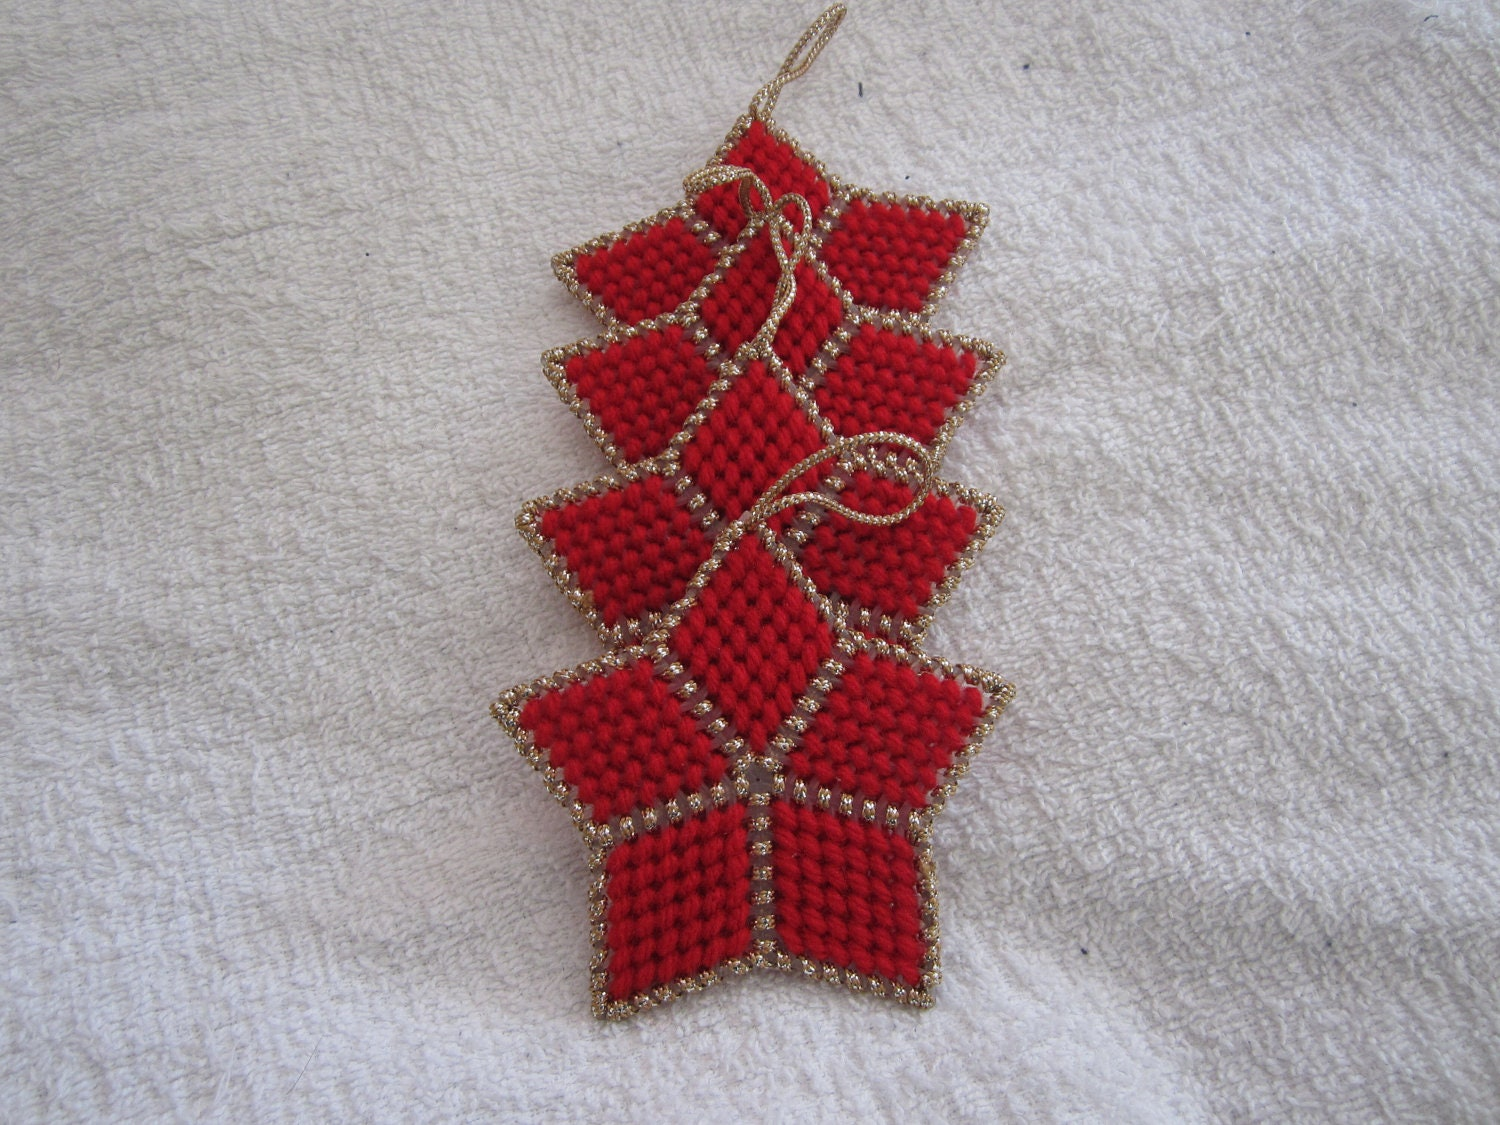 RED & GOLD STAR Christmas Ornaments in Plastic Canvas